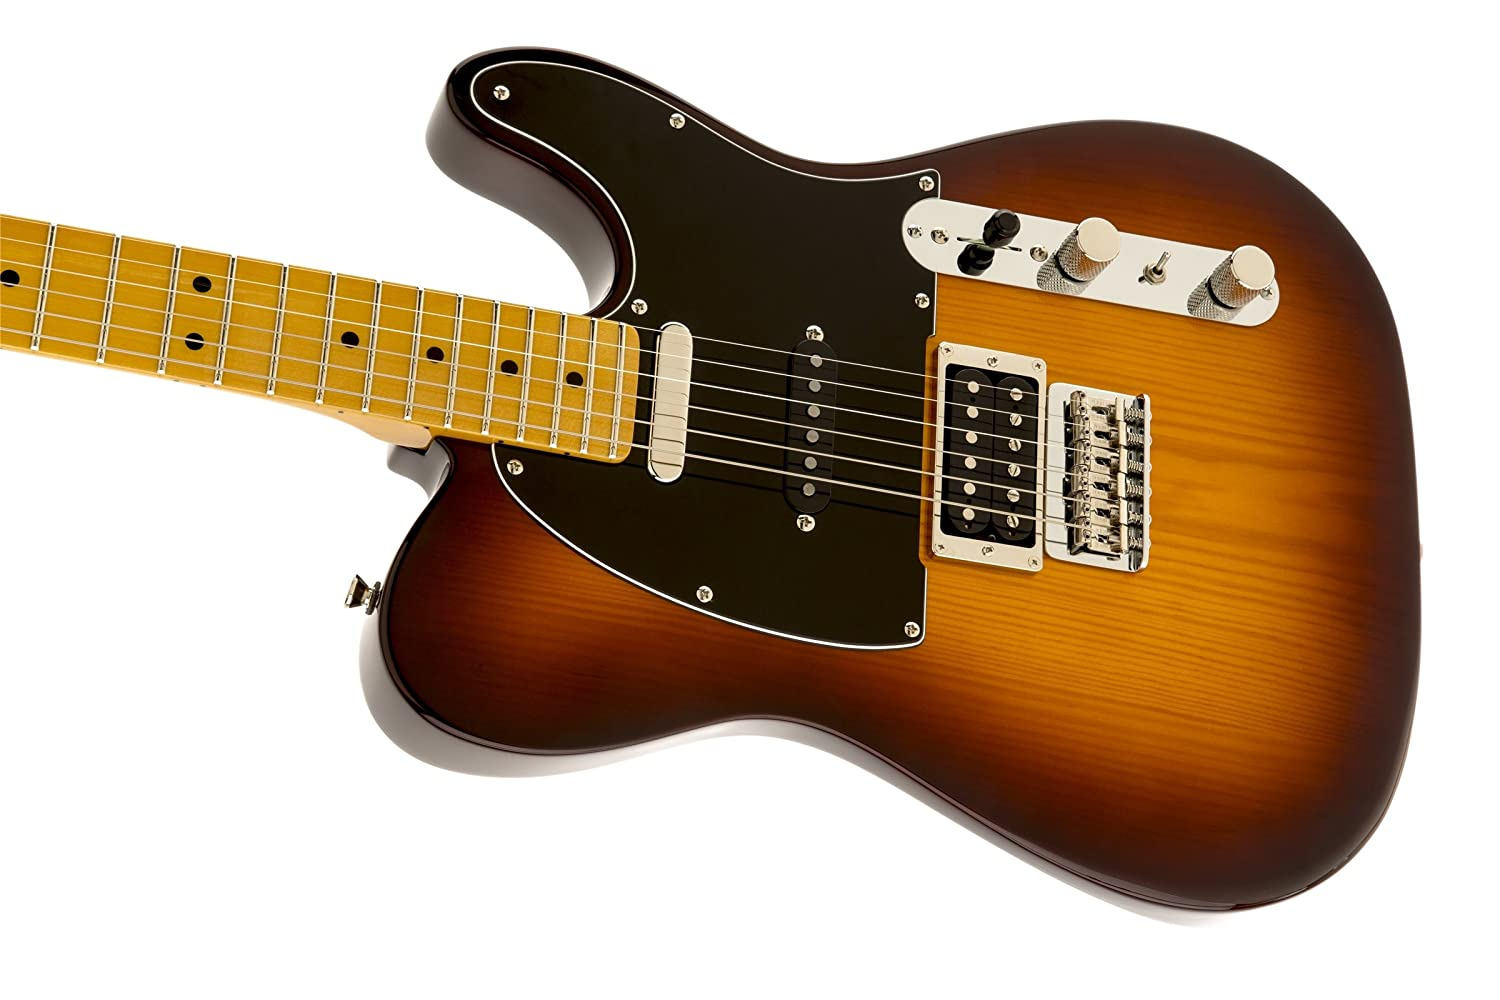 Fender Tele 2 Humbucker Wiring Diagram Libraries With Humbuckers Amazon Com Modern Player Plus Electric Guitar Honeyamazon